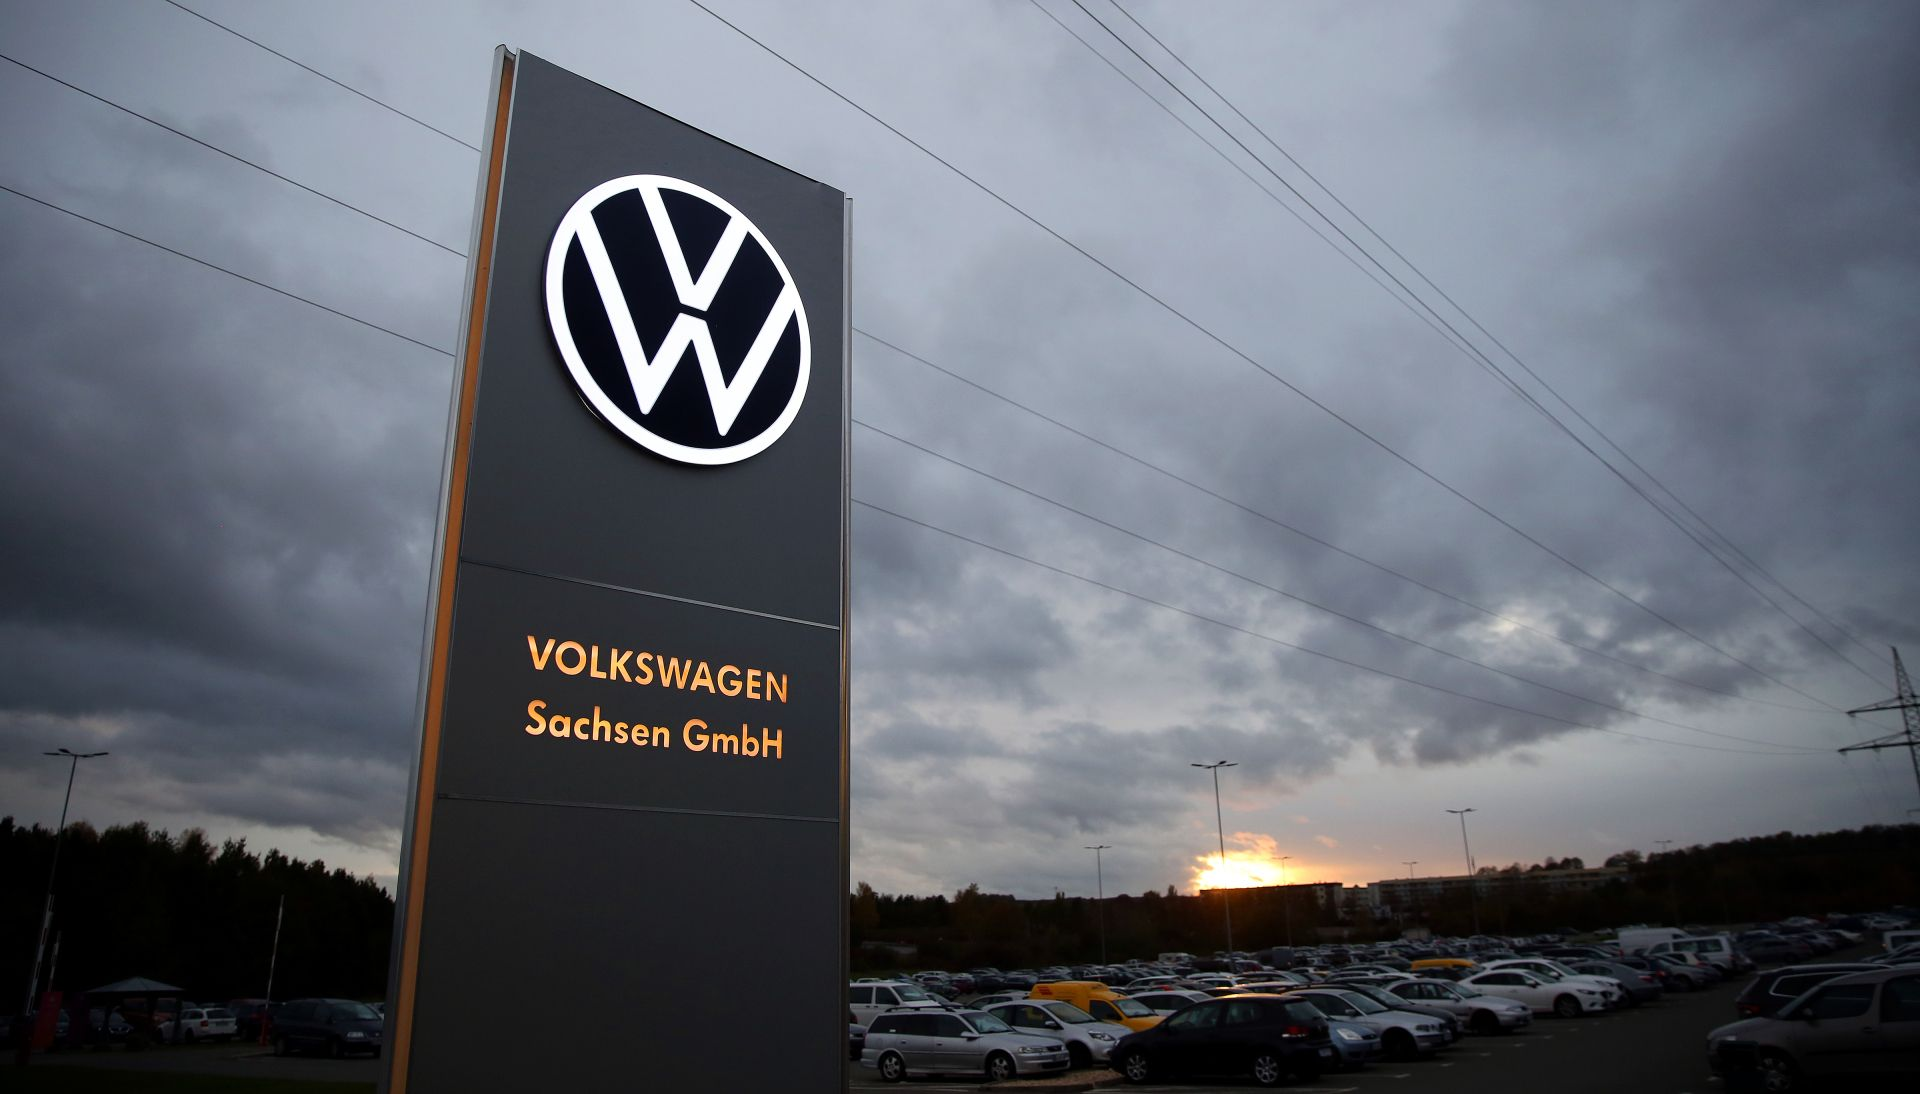 The logo of German car maker Volkswagen (VW) is pictured at the car factory in Zwickau, eastern Germany on November 4, 2019. (Photo by RONNY HARTMANN / AFP)